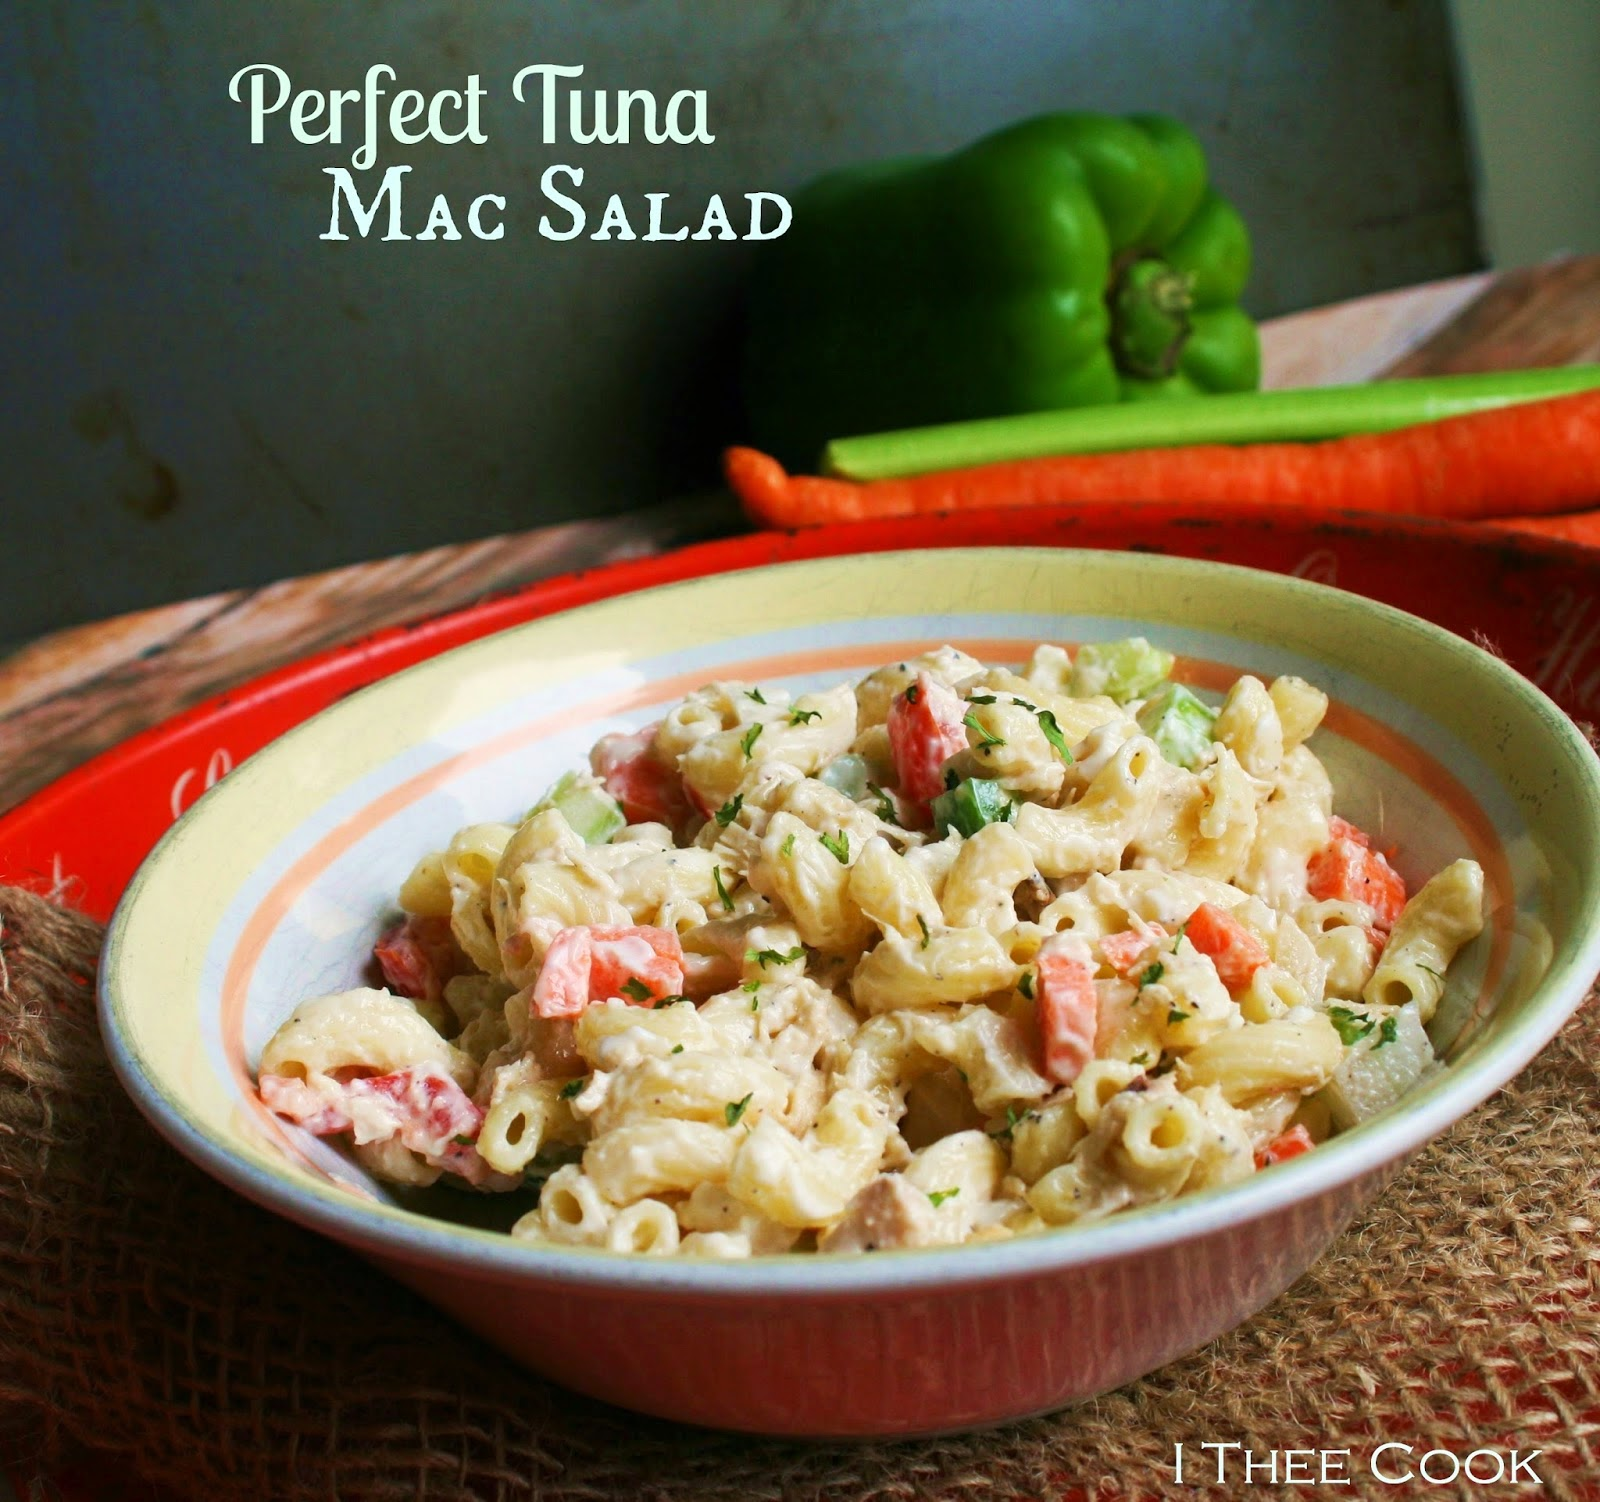 Perfect Tuna Mac Salad